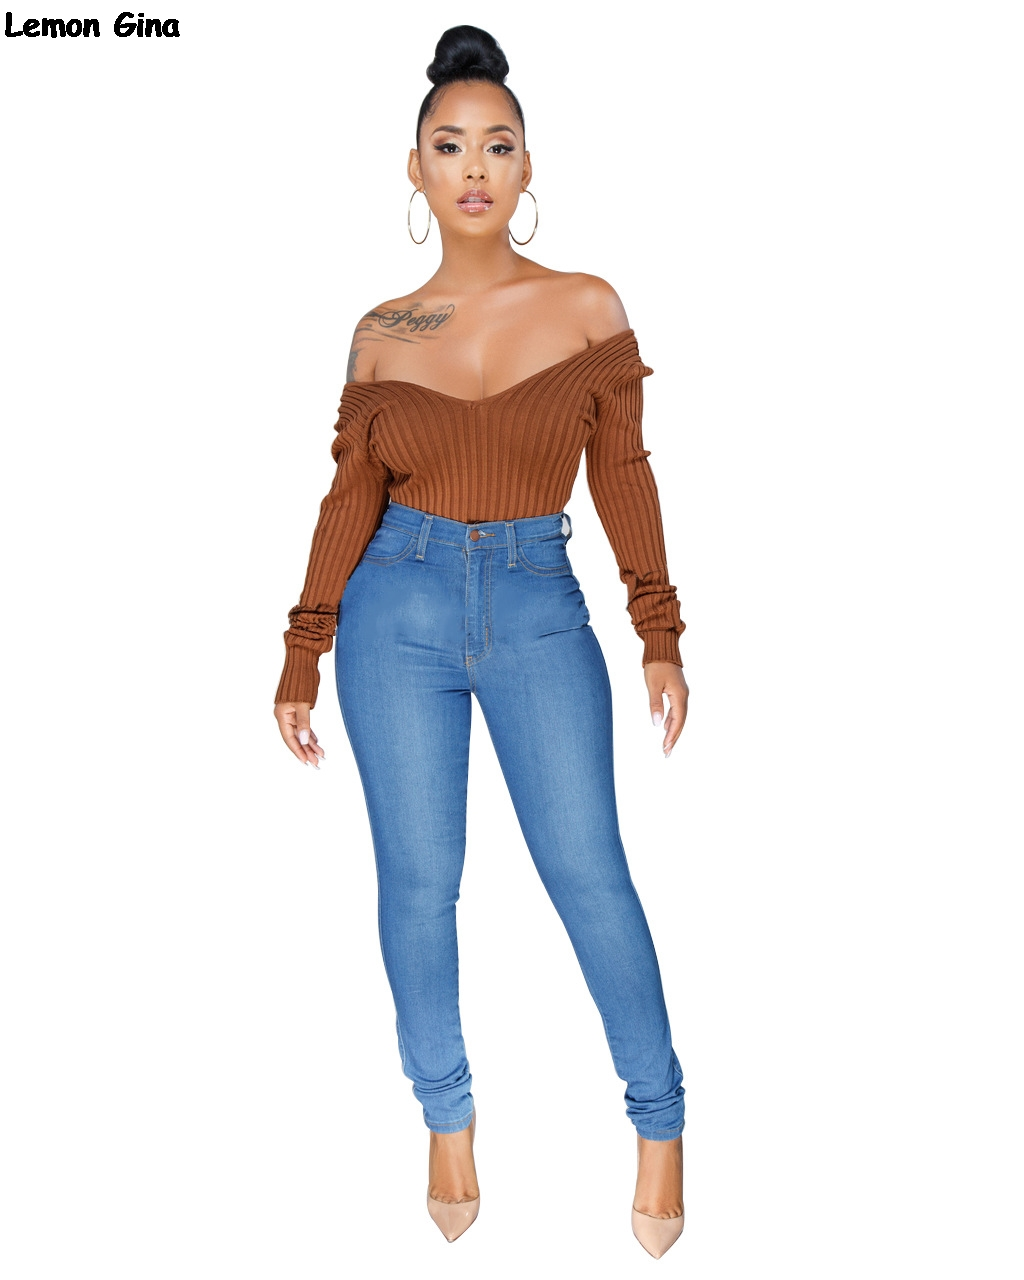 Women's Clothing Hearty New Winter Women Sexy Off Shoulder V-neck Knitted Skinny Bodycon Fashion Bodysuits Club Night Tops 4 Colors S-3xl Wy6502